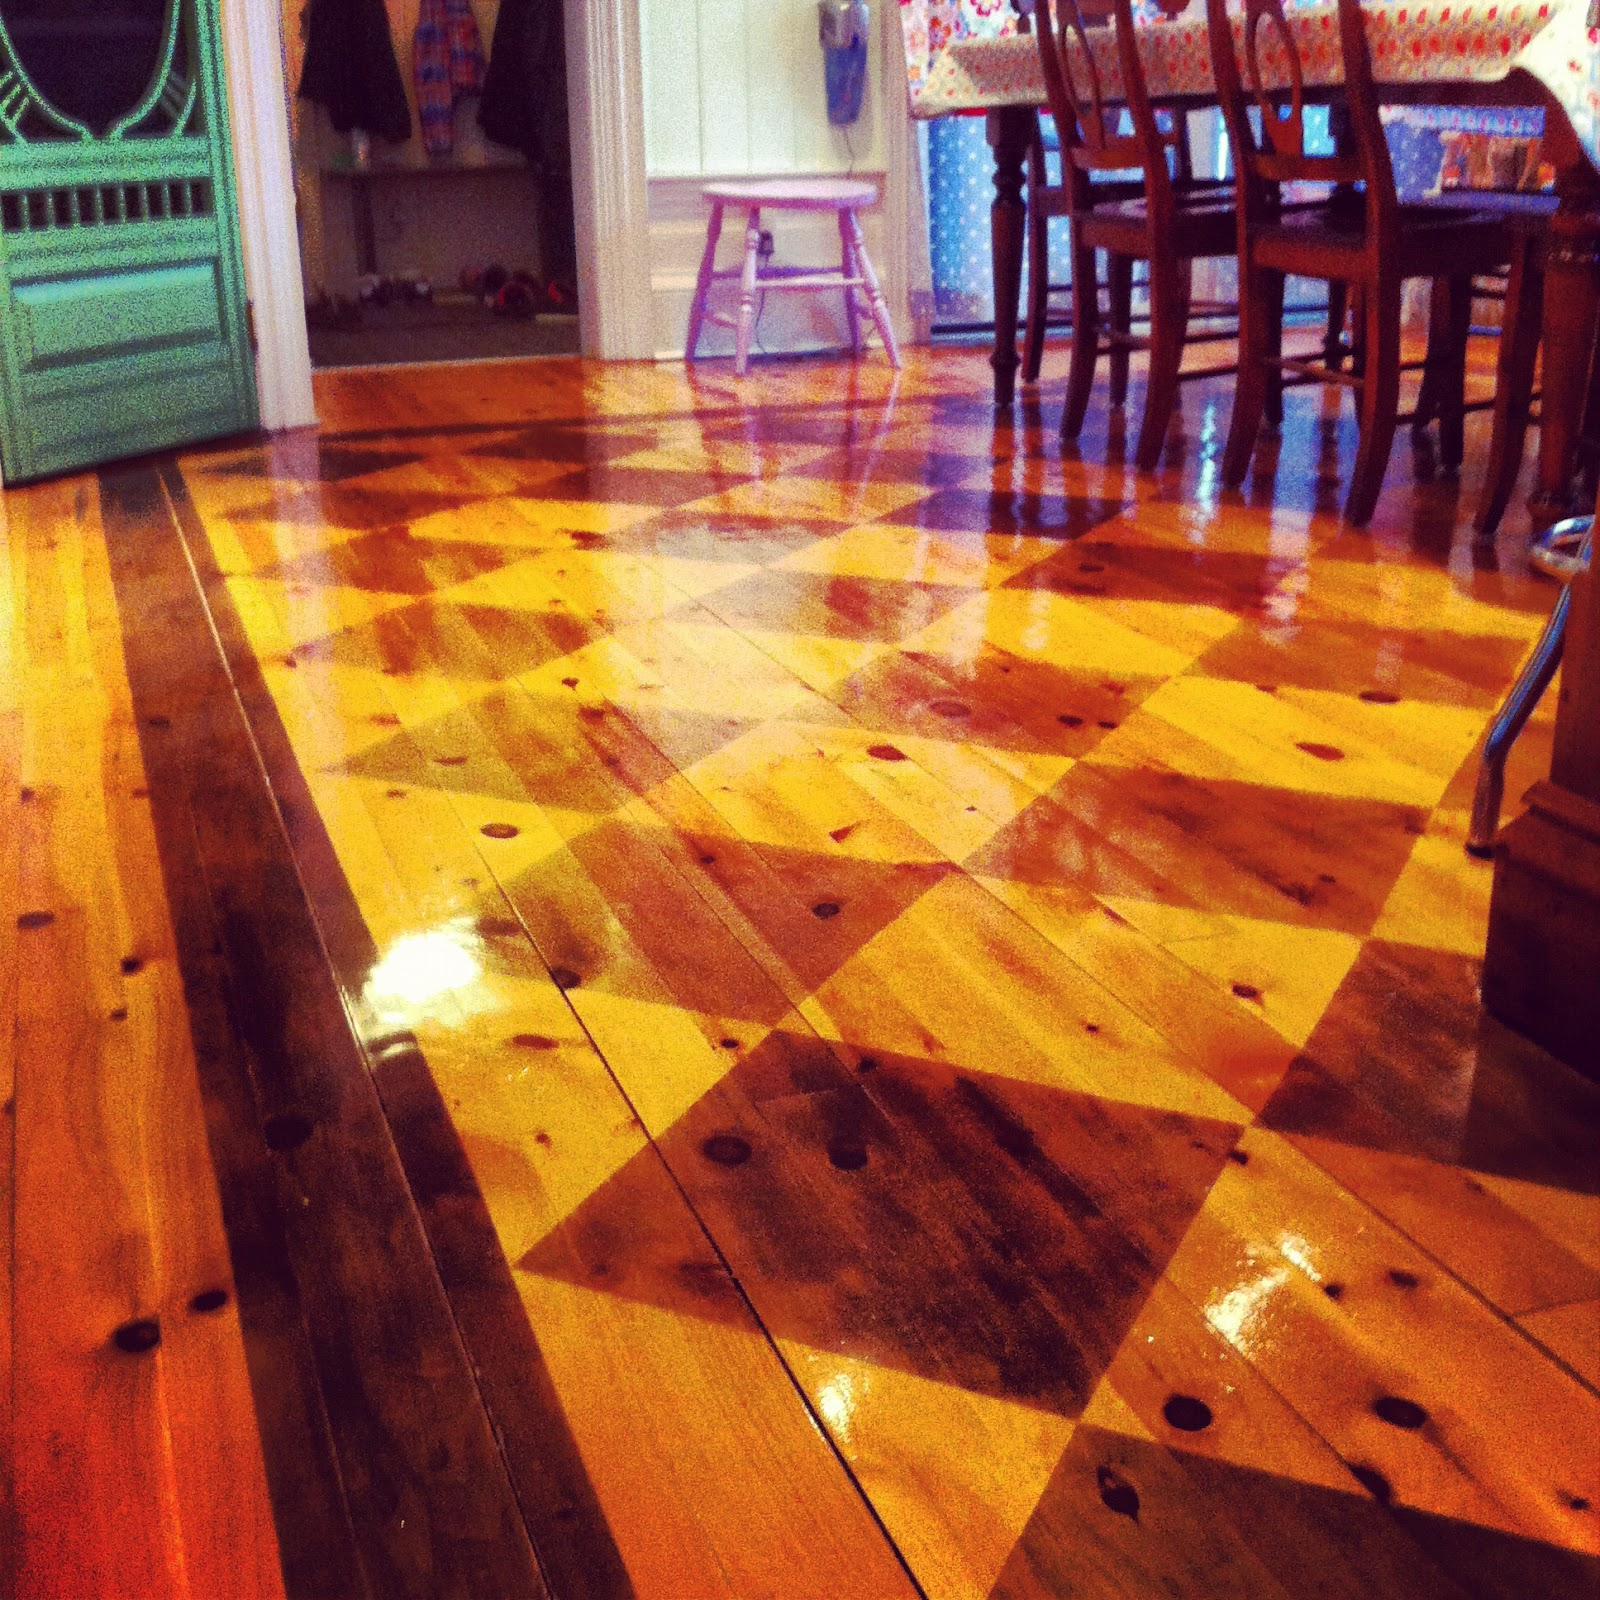 Do you love him loretta checkerboard painted floors for At floor or on floor